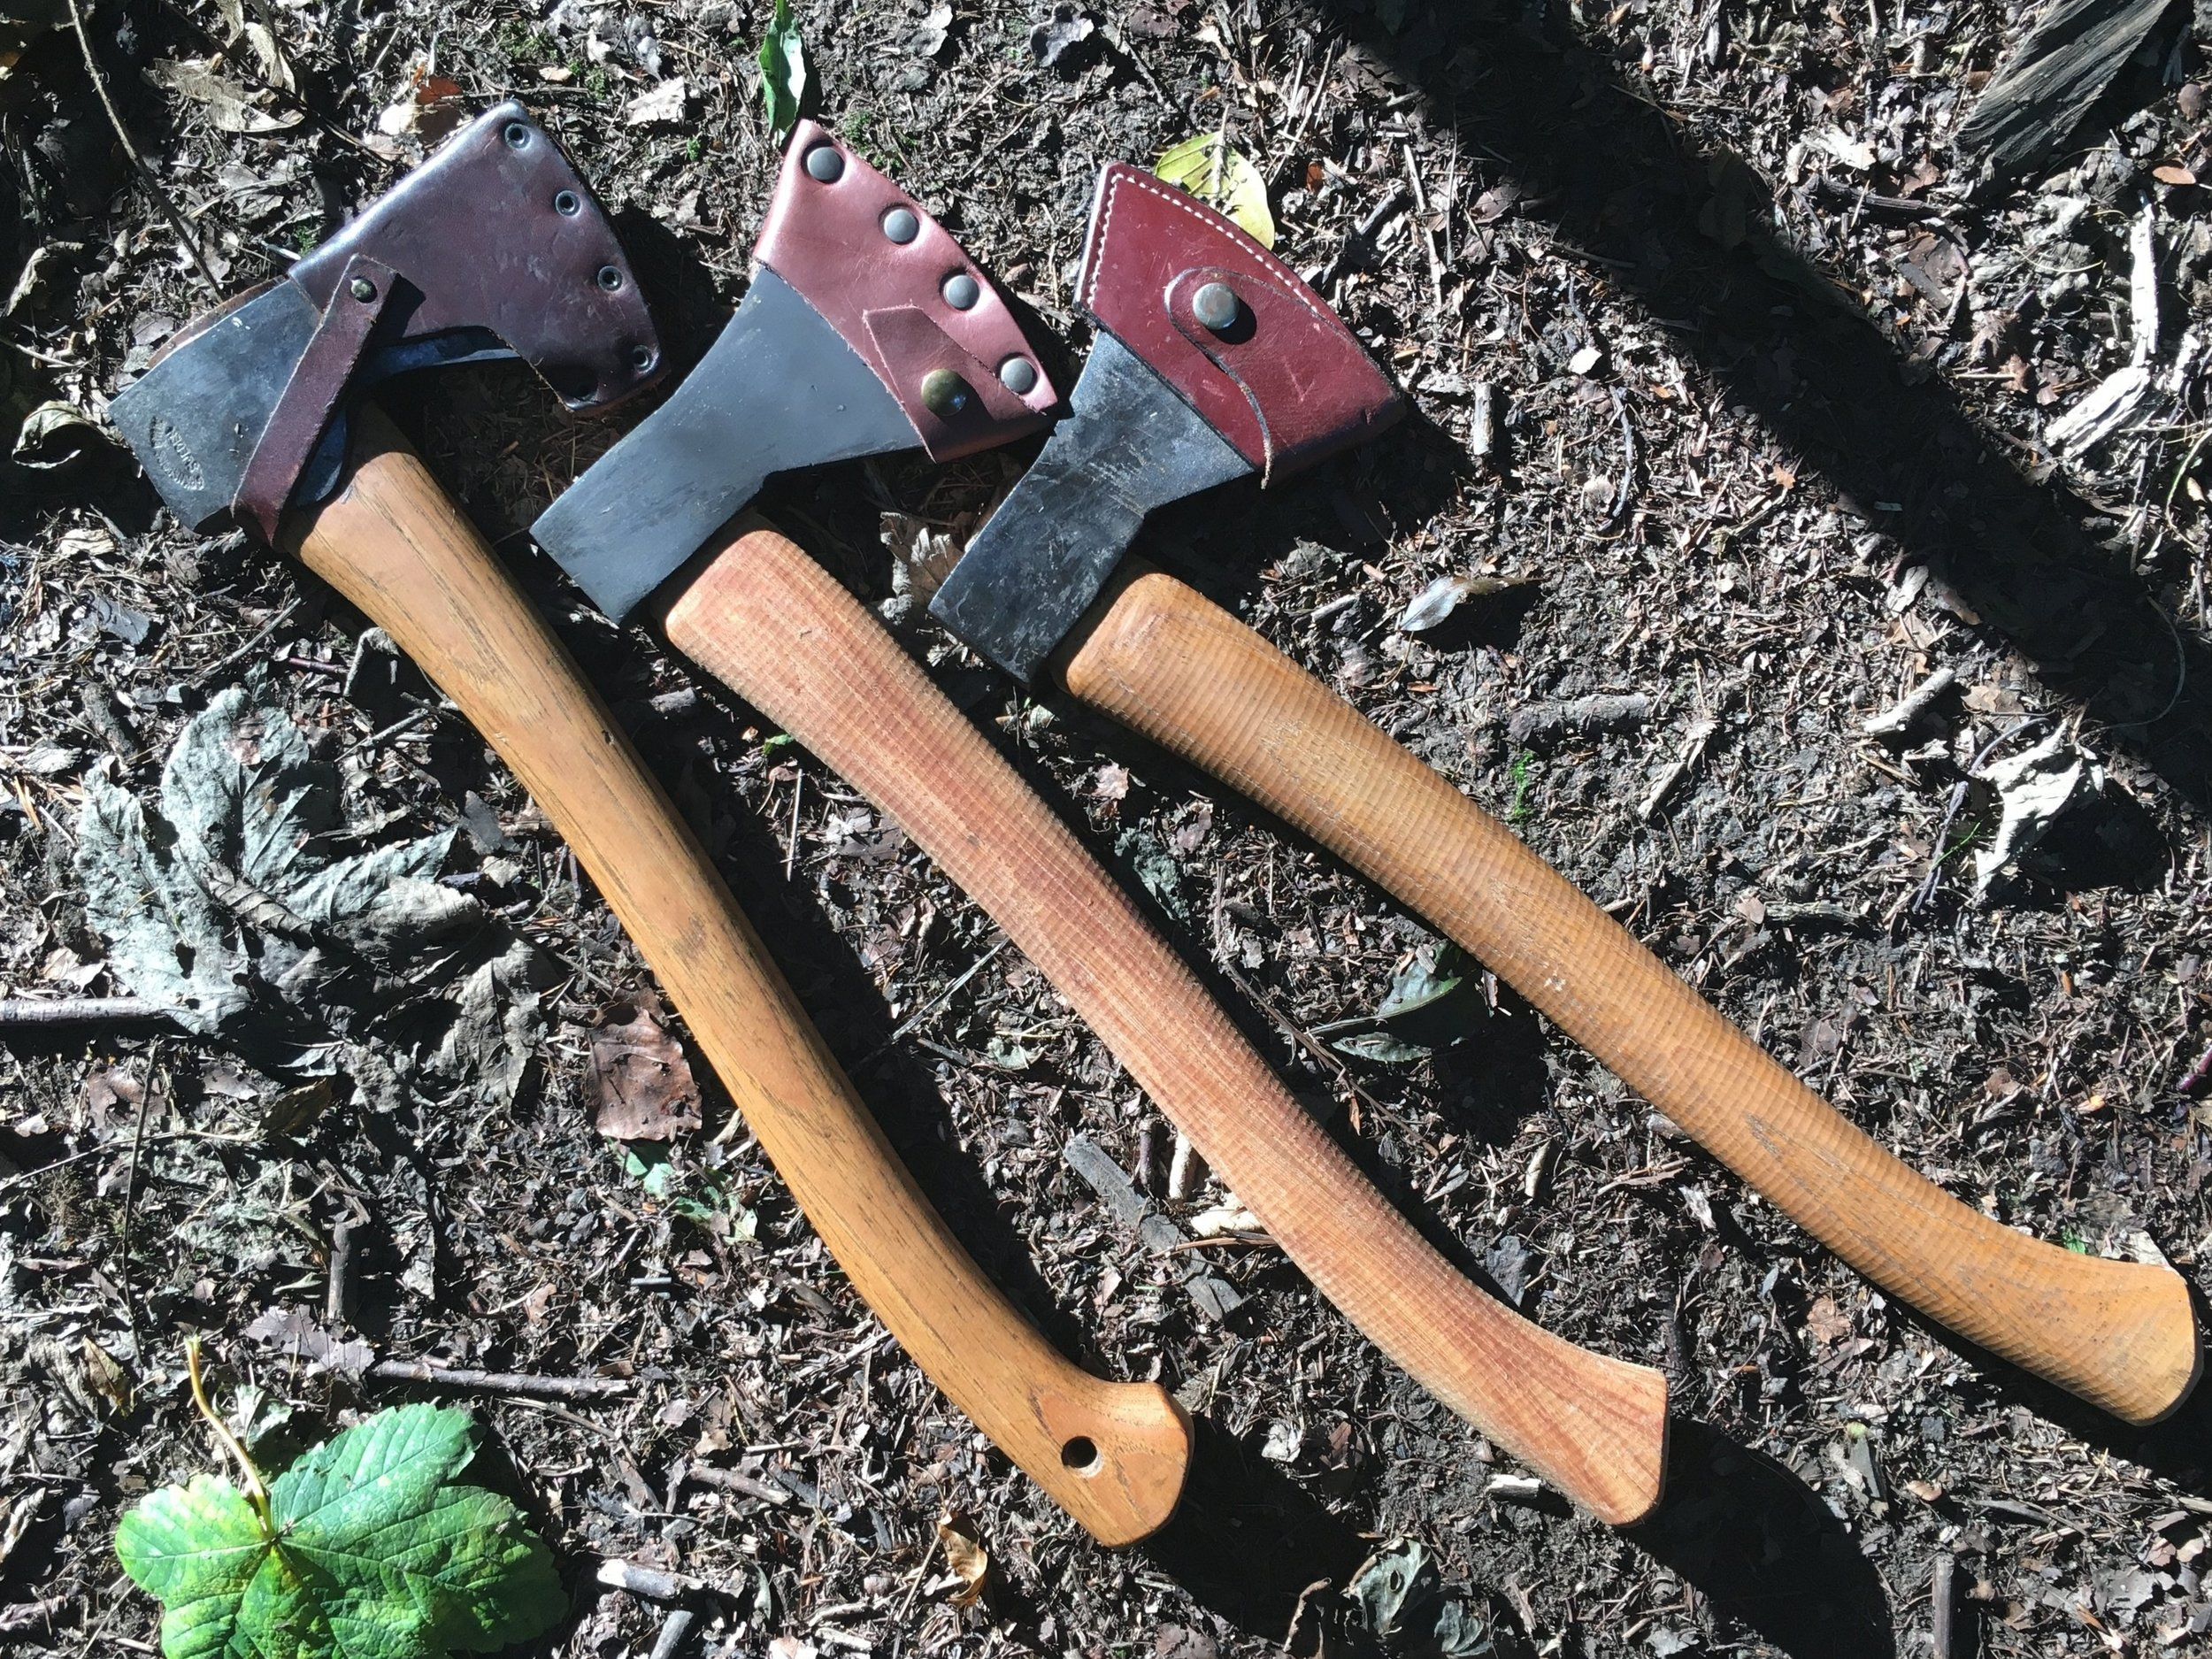 A GB Small Forest, Bushcraft Axe and Sheath, and Bushcraft Axe Prototype....